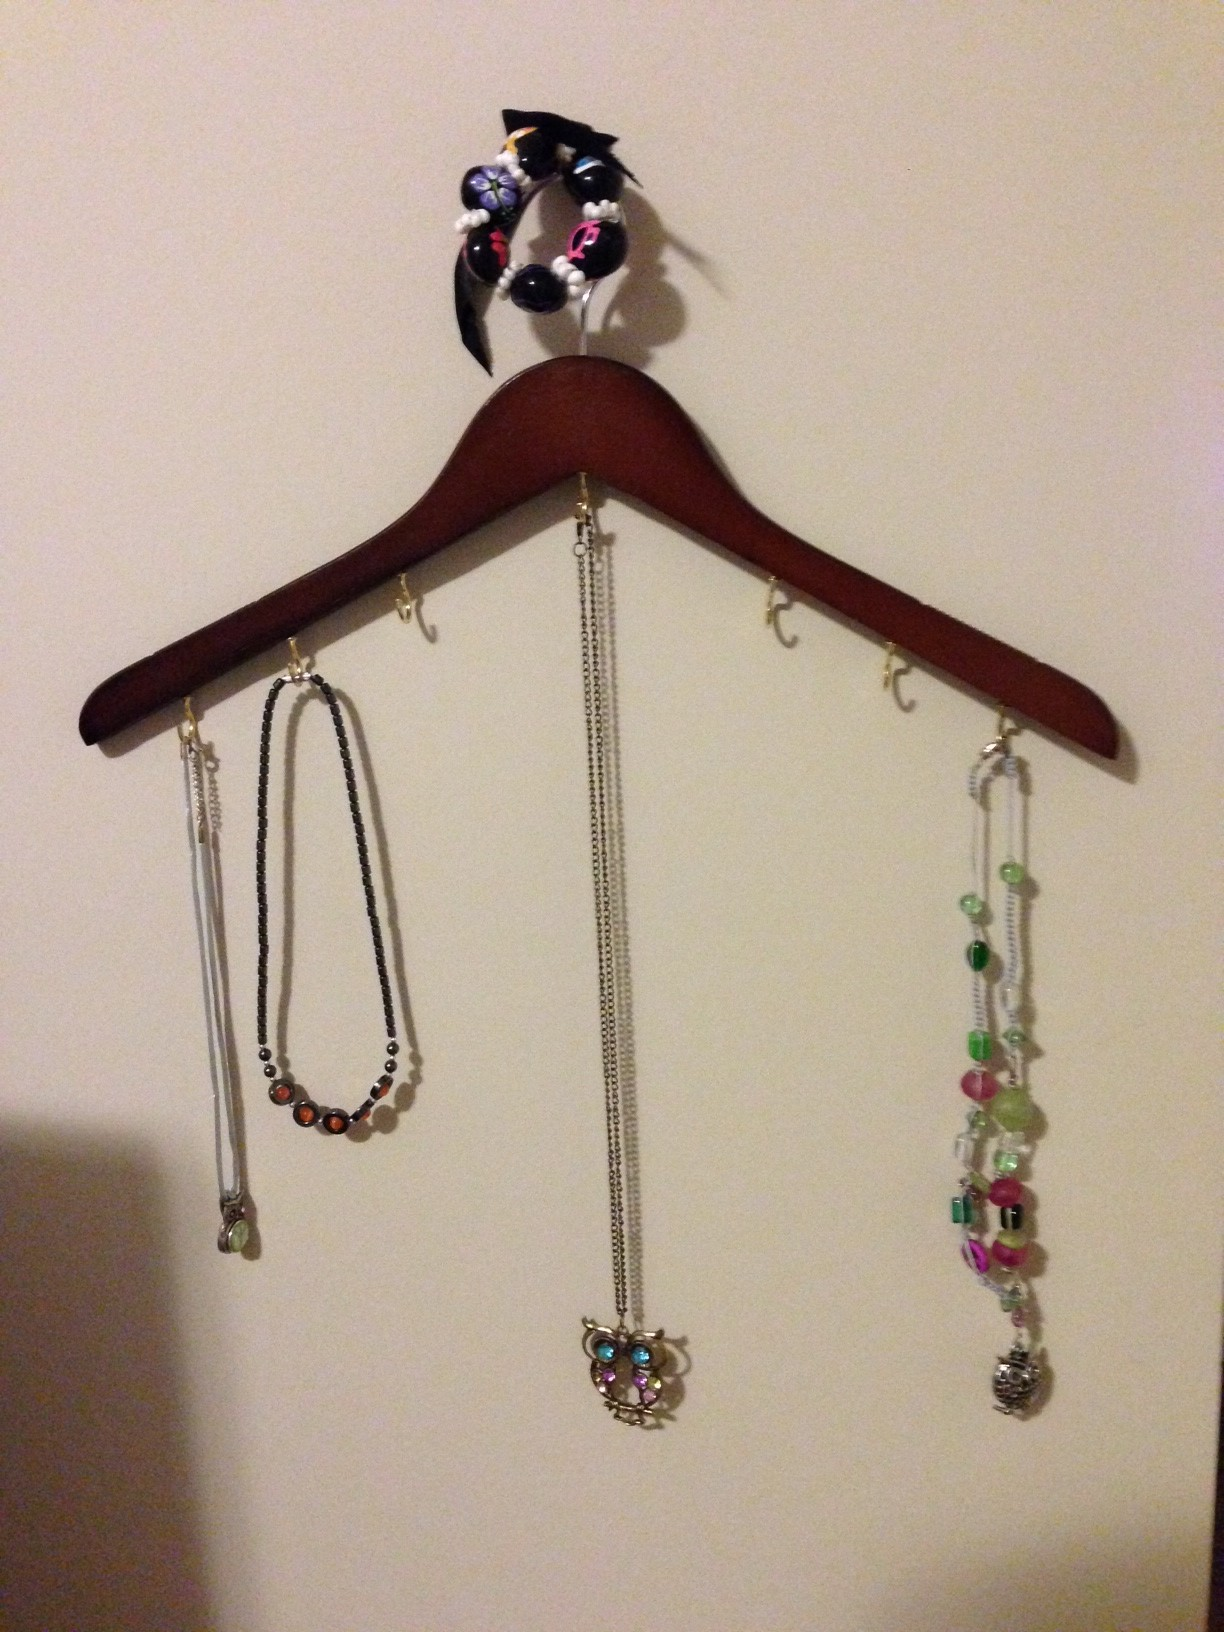 Make a Necklace Holder from a Shirt Hanger